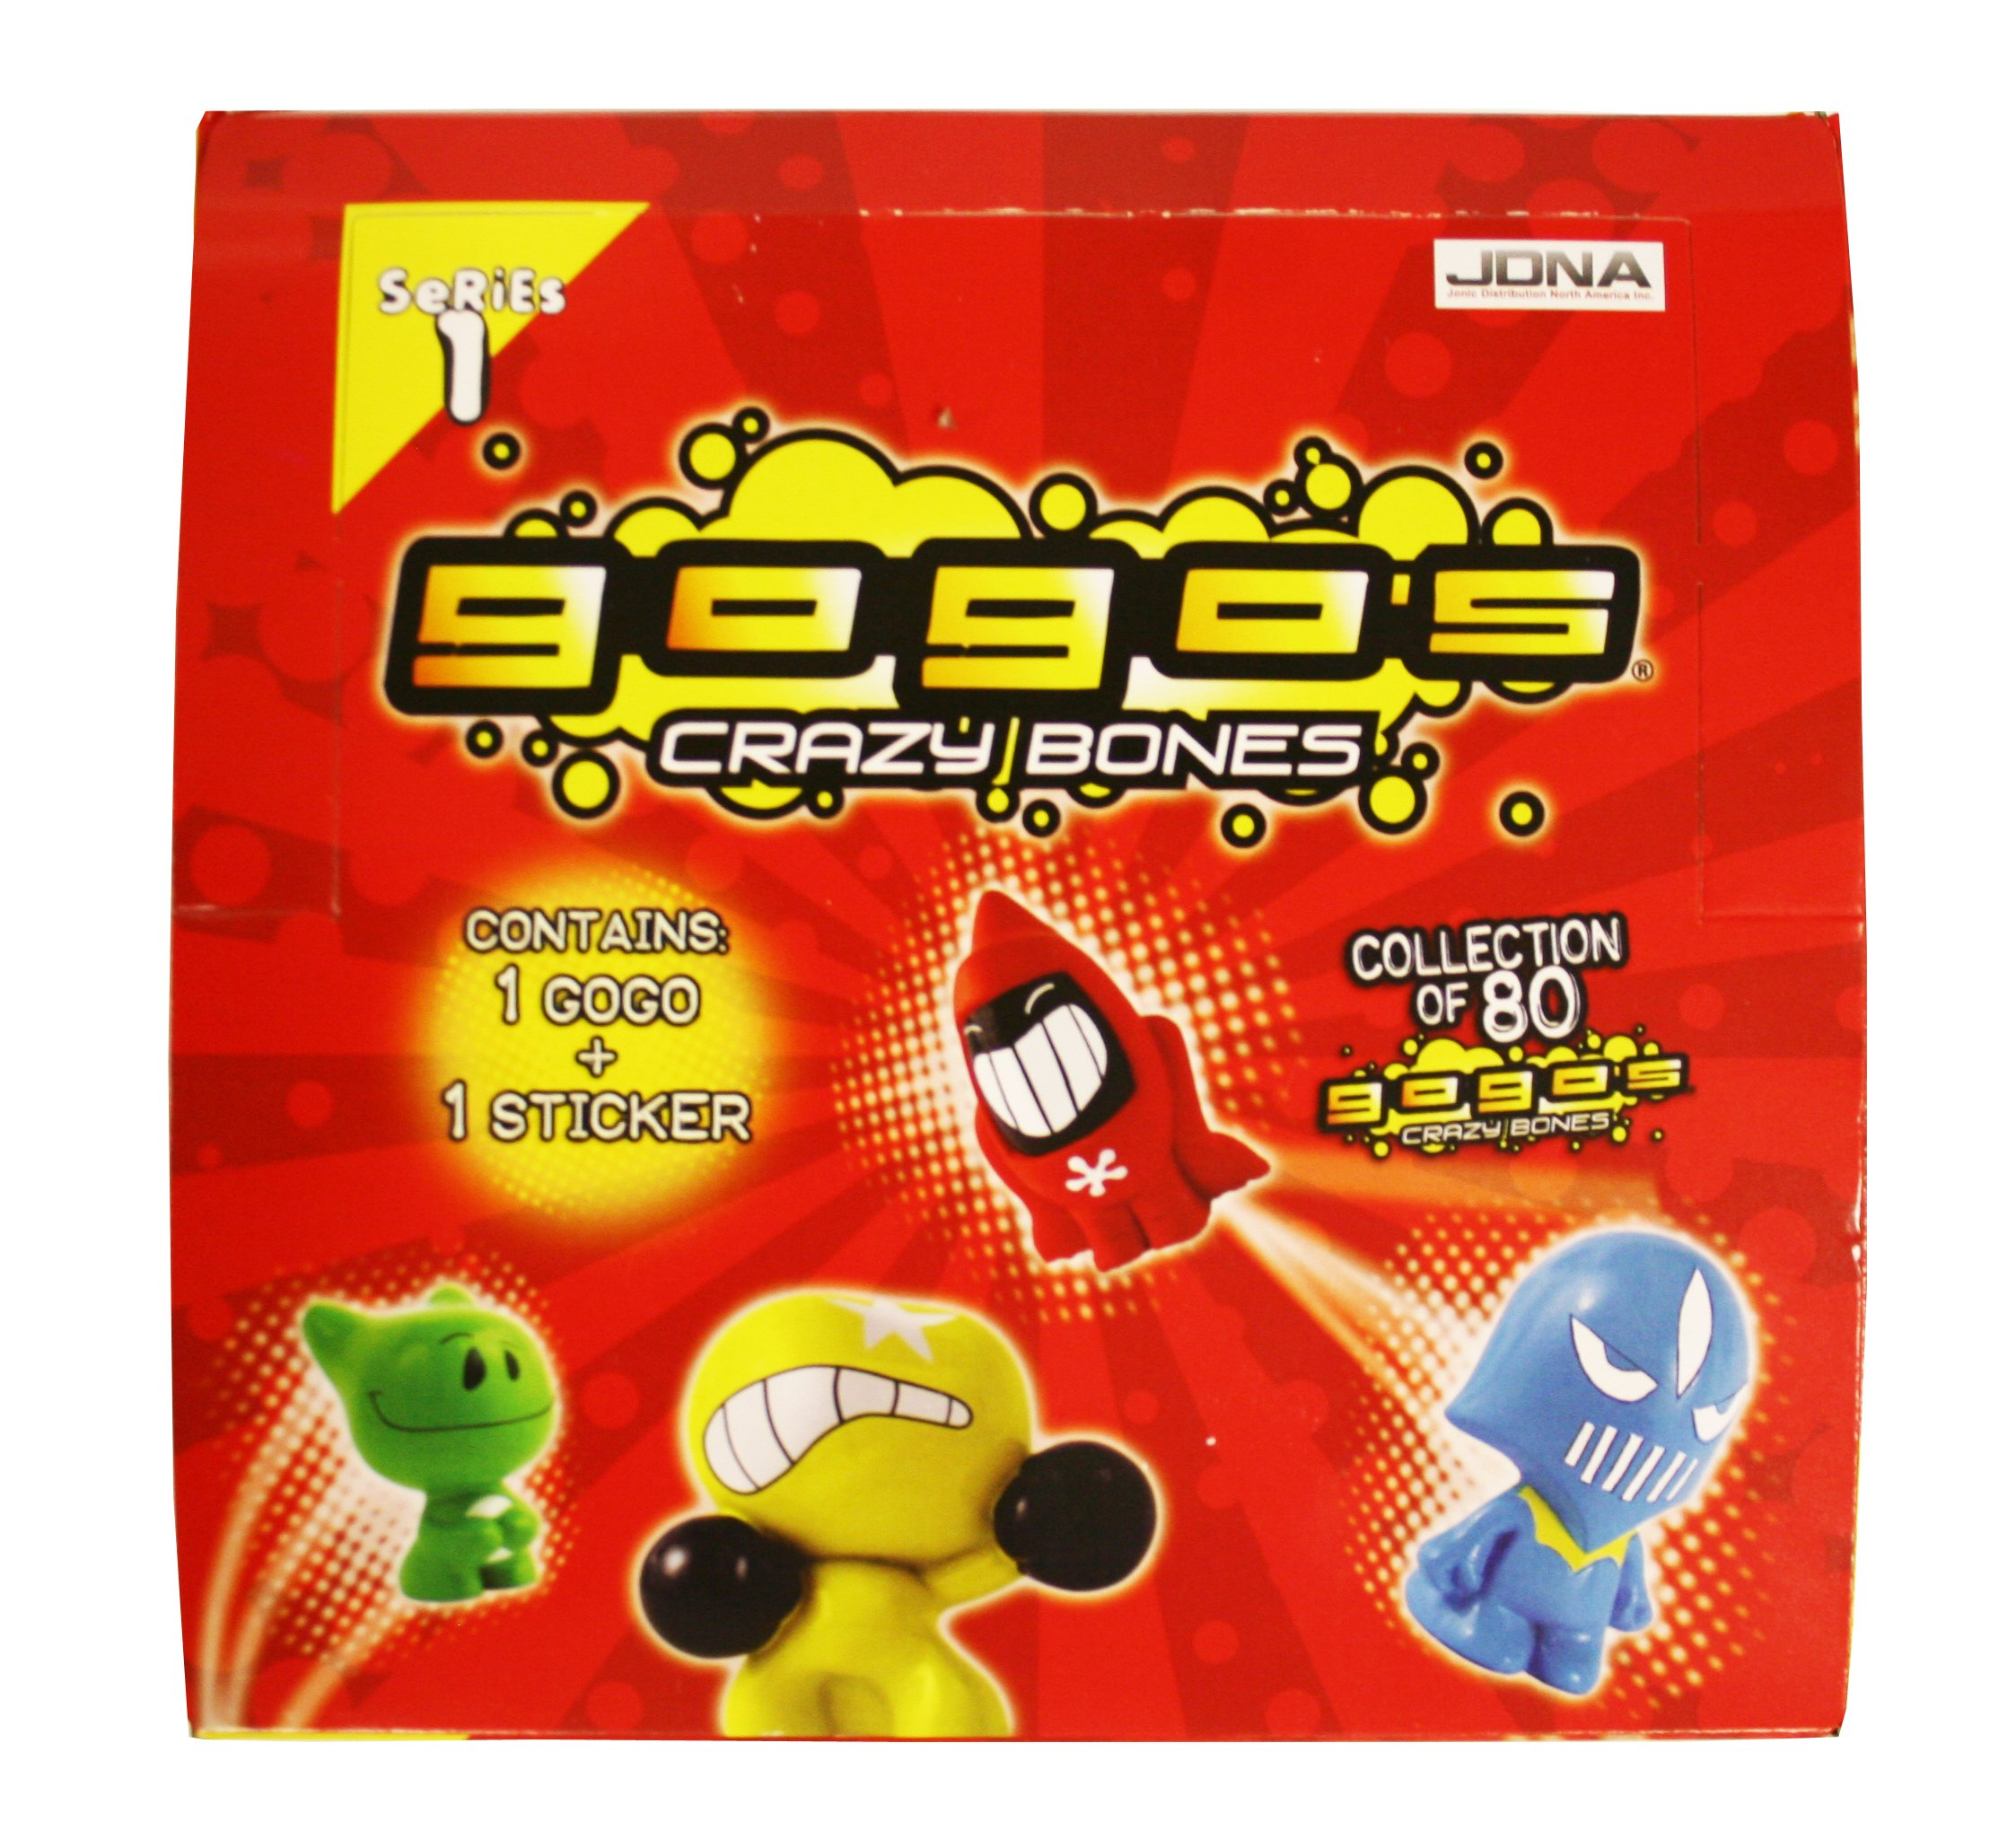 Gogo's Crazy Bones Series One 45 Pack (1 Gogo And 1 Sticker) Box by JDNA Inc.